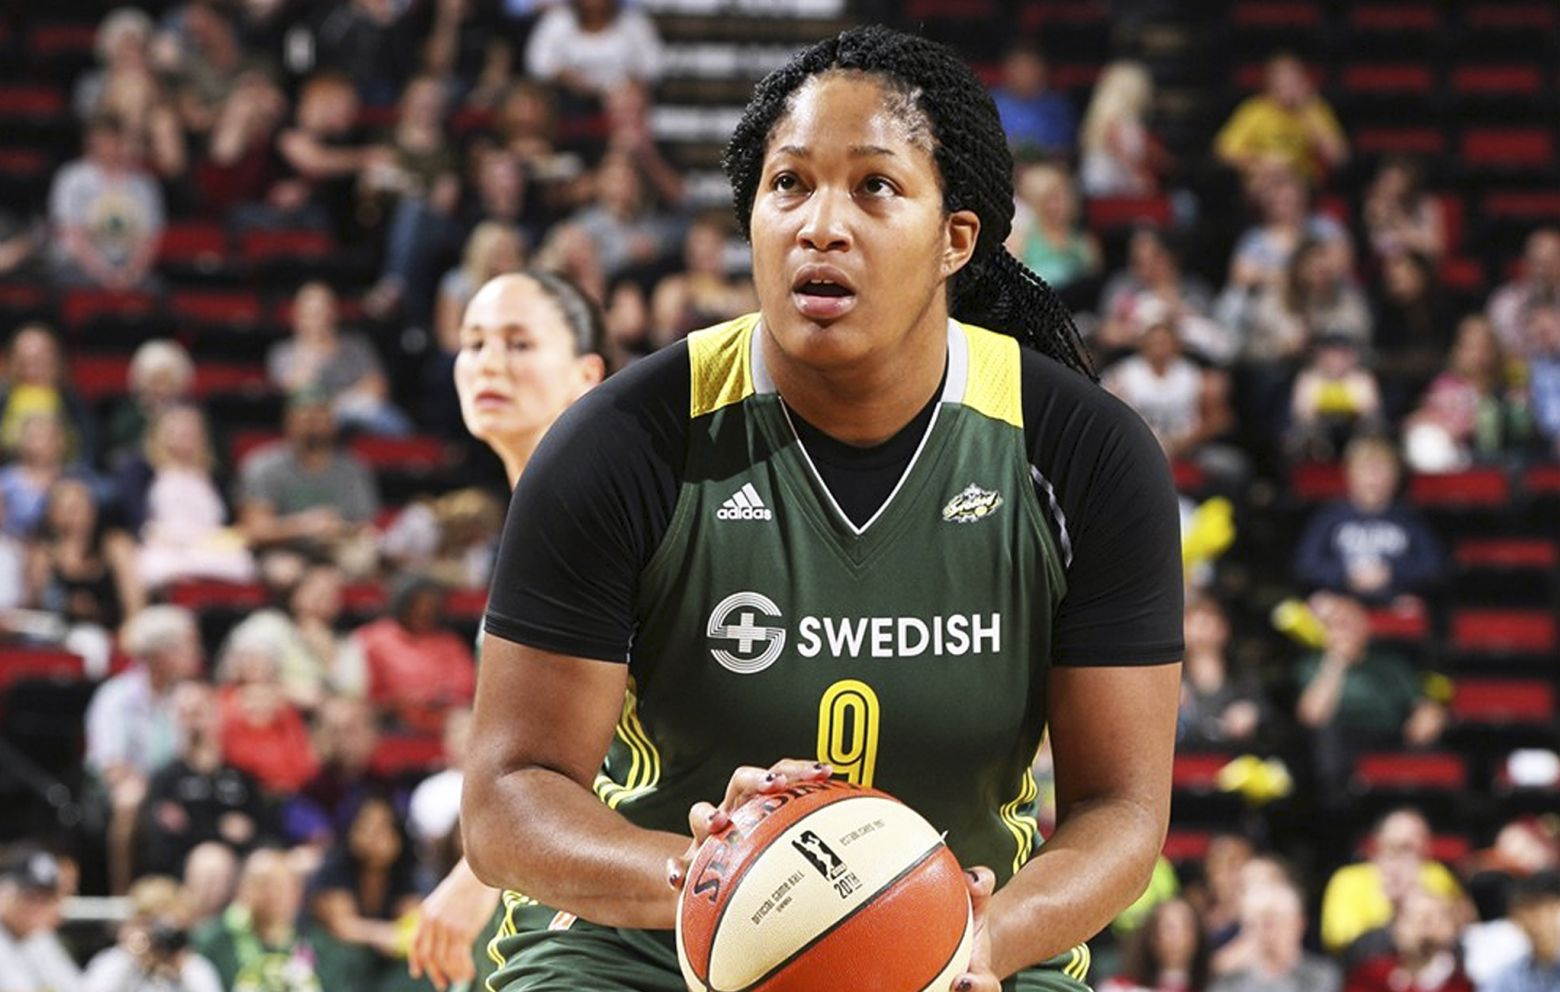 MARKEISHA GATLING, 10th pick in the 2014 WNBA Draft, has signed with Regeneracom Sports